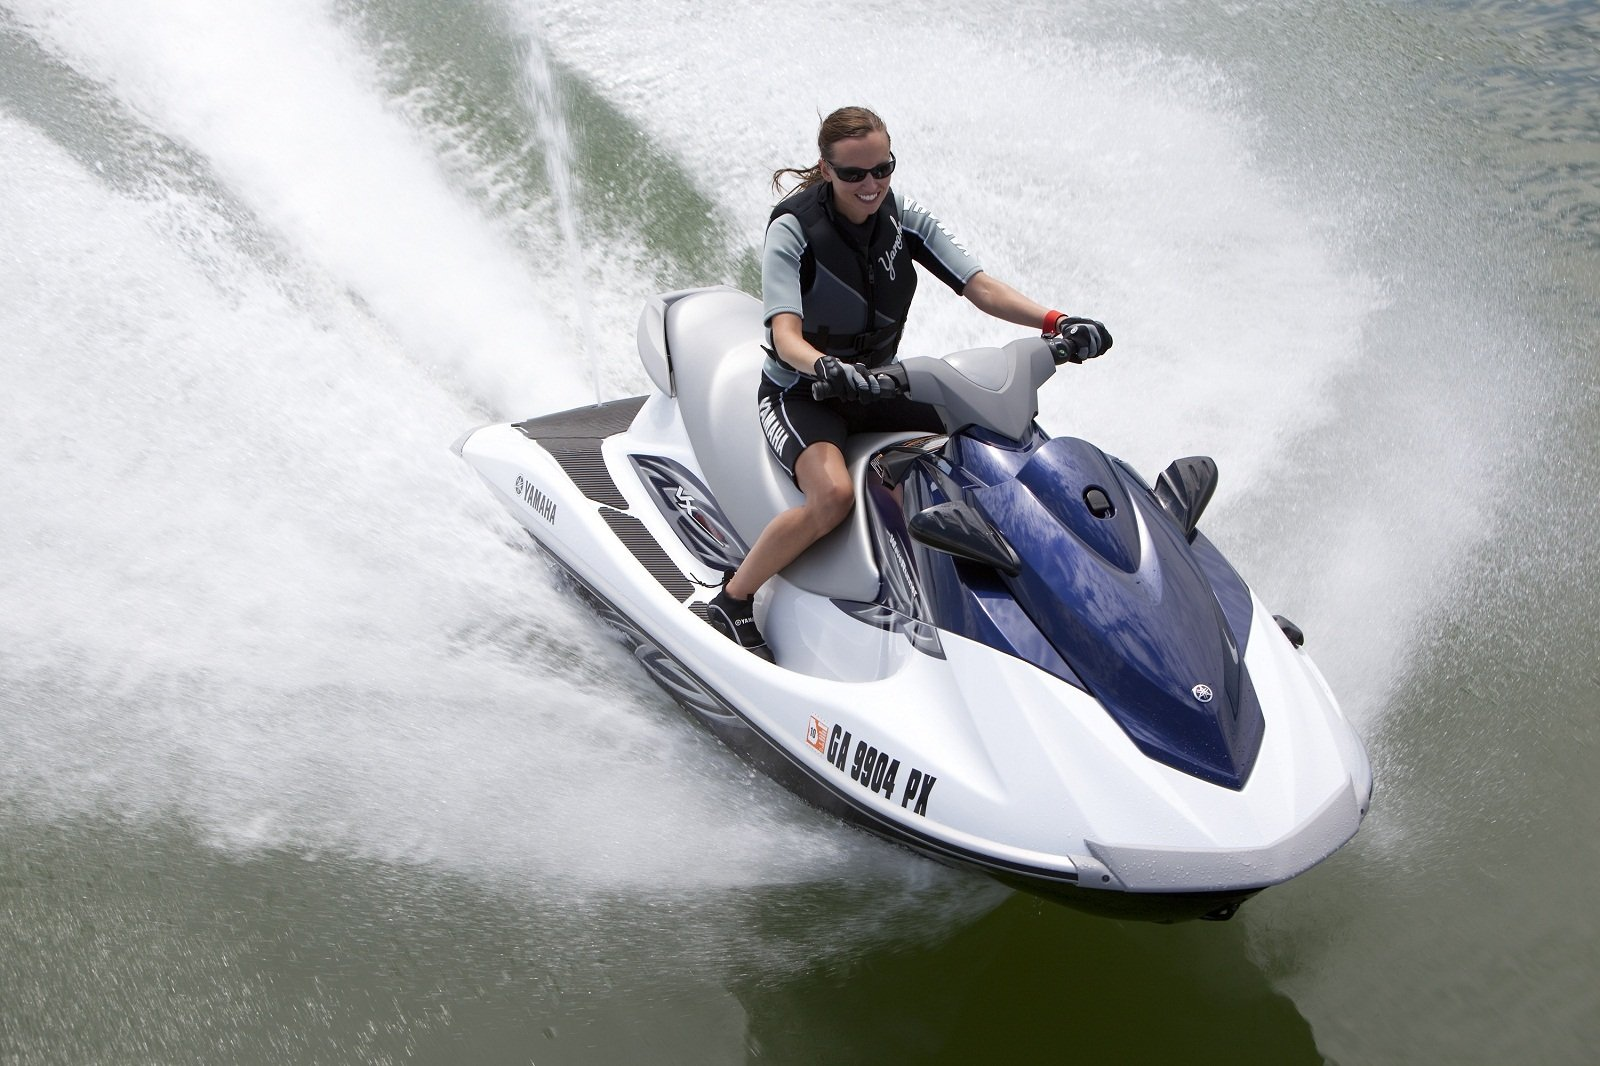 Yamaha News And Reviews Top Speed Subwoofer Vx 12 Bd 2011 Deluxe Waverunner